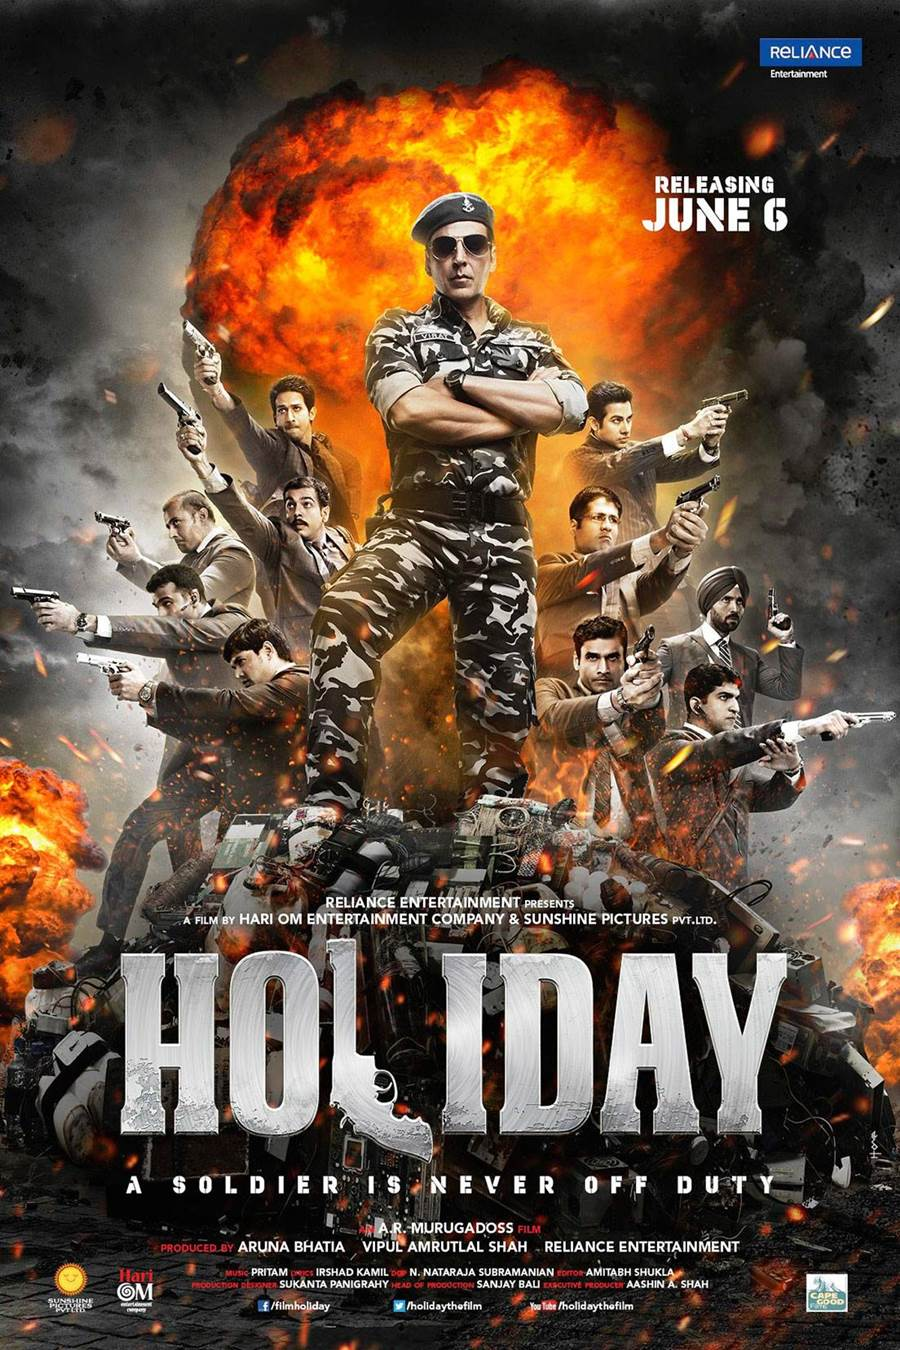 Holiday Movie All Dialogues (Famous Quotes)